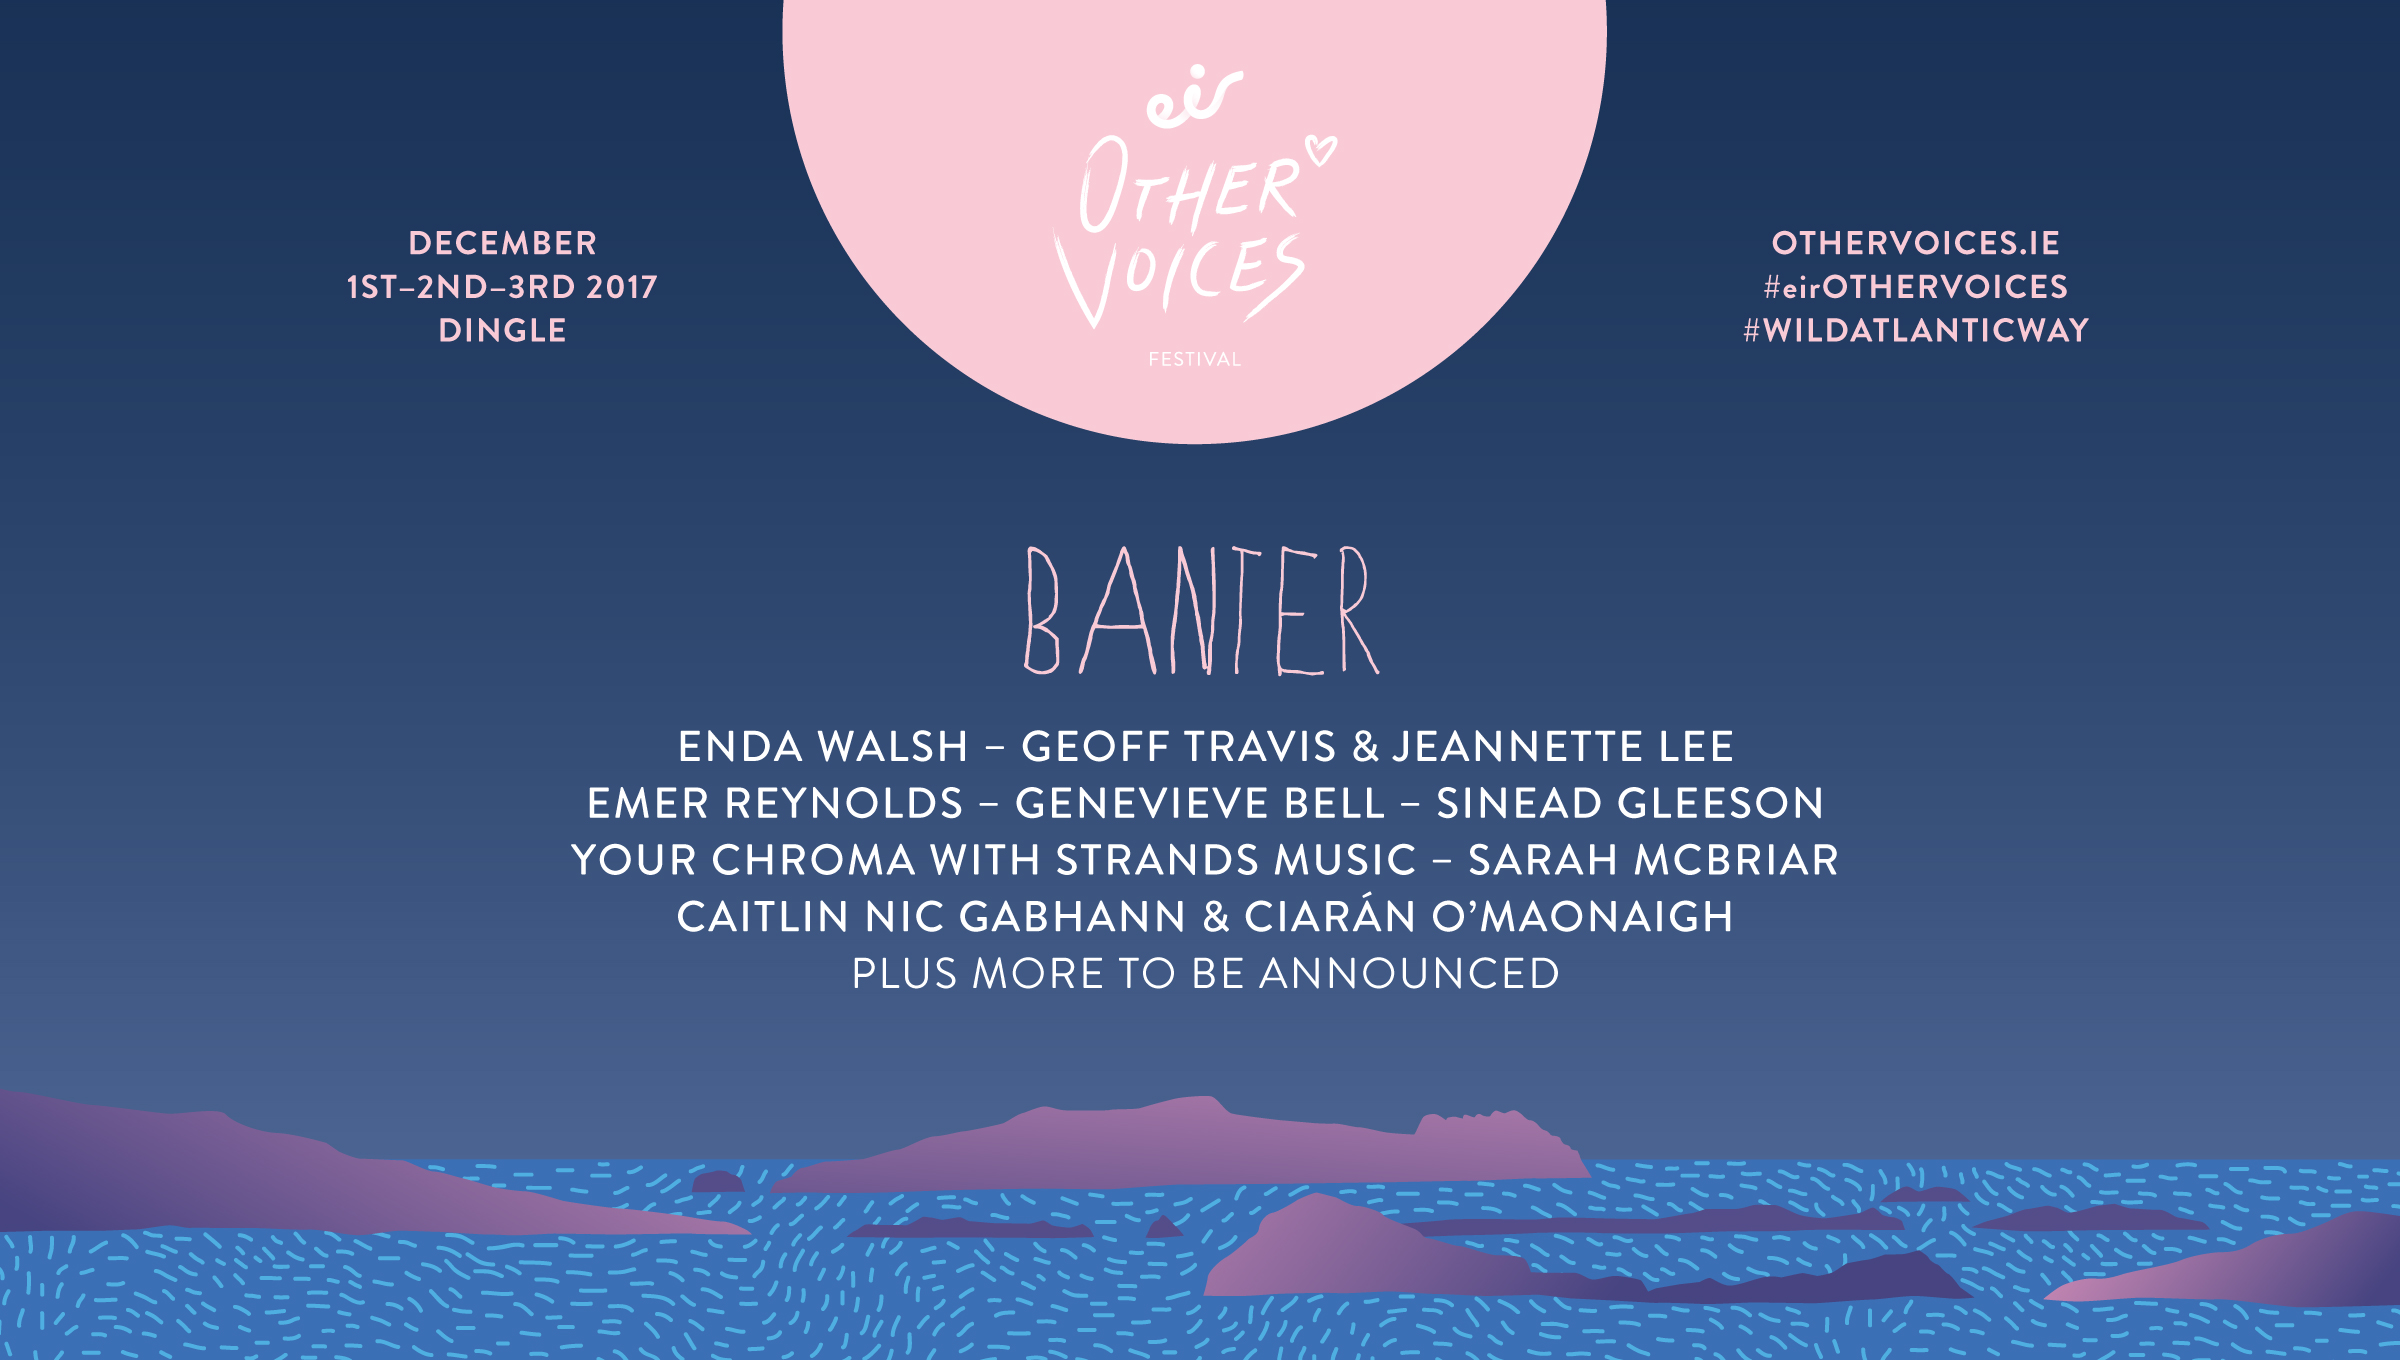 Banter at eir Other Voices 2017